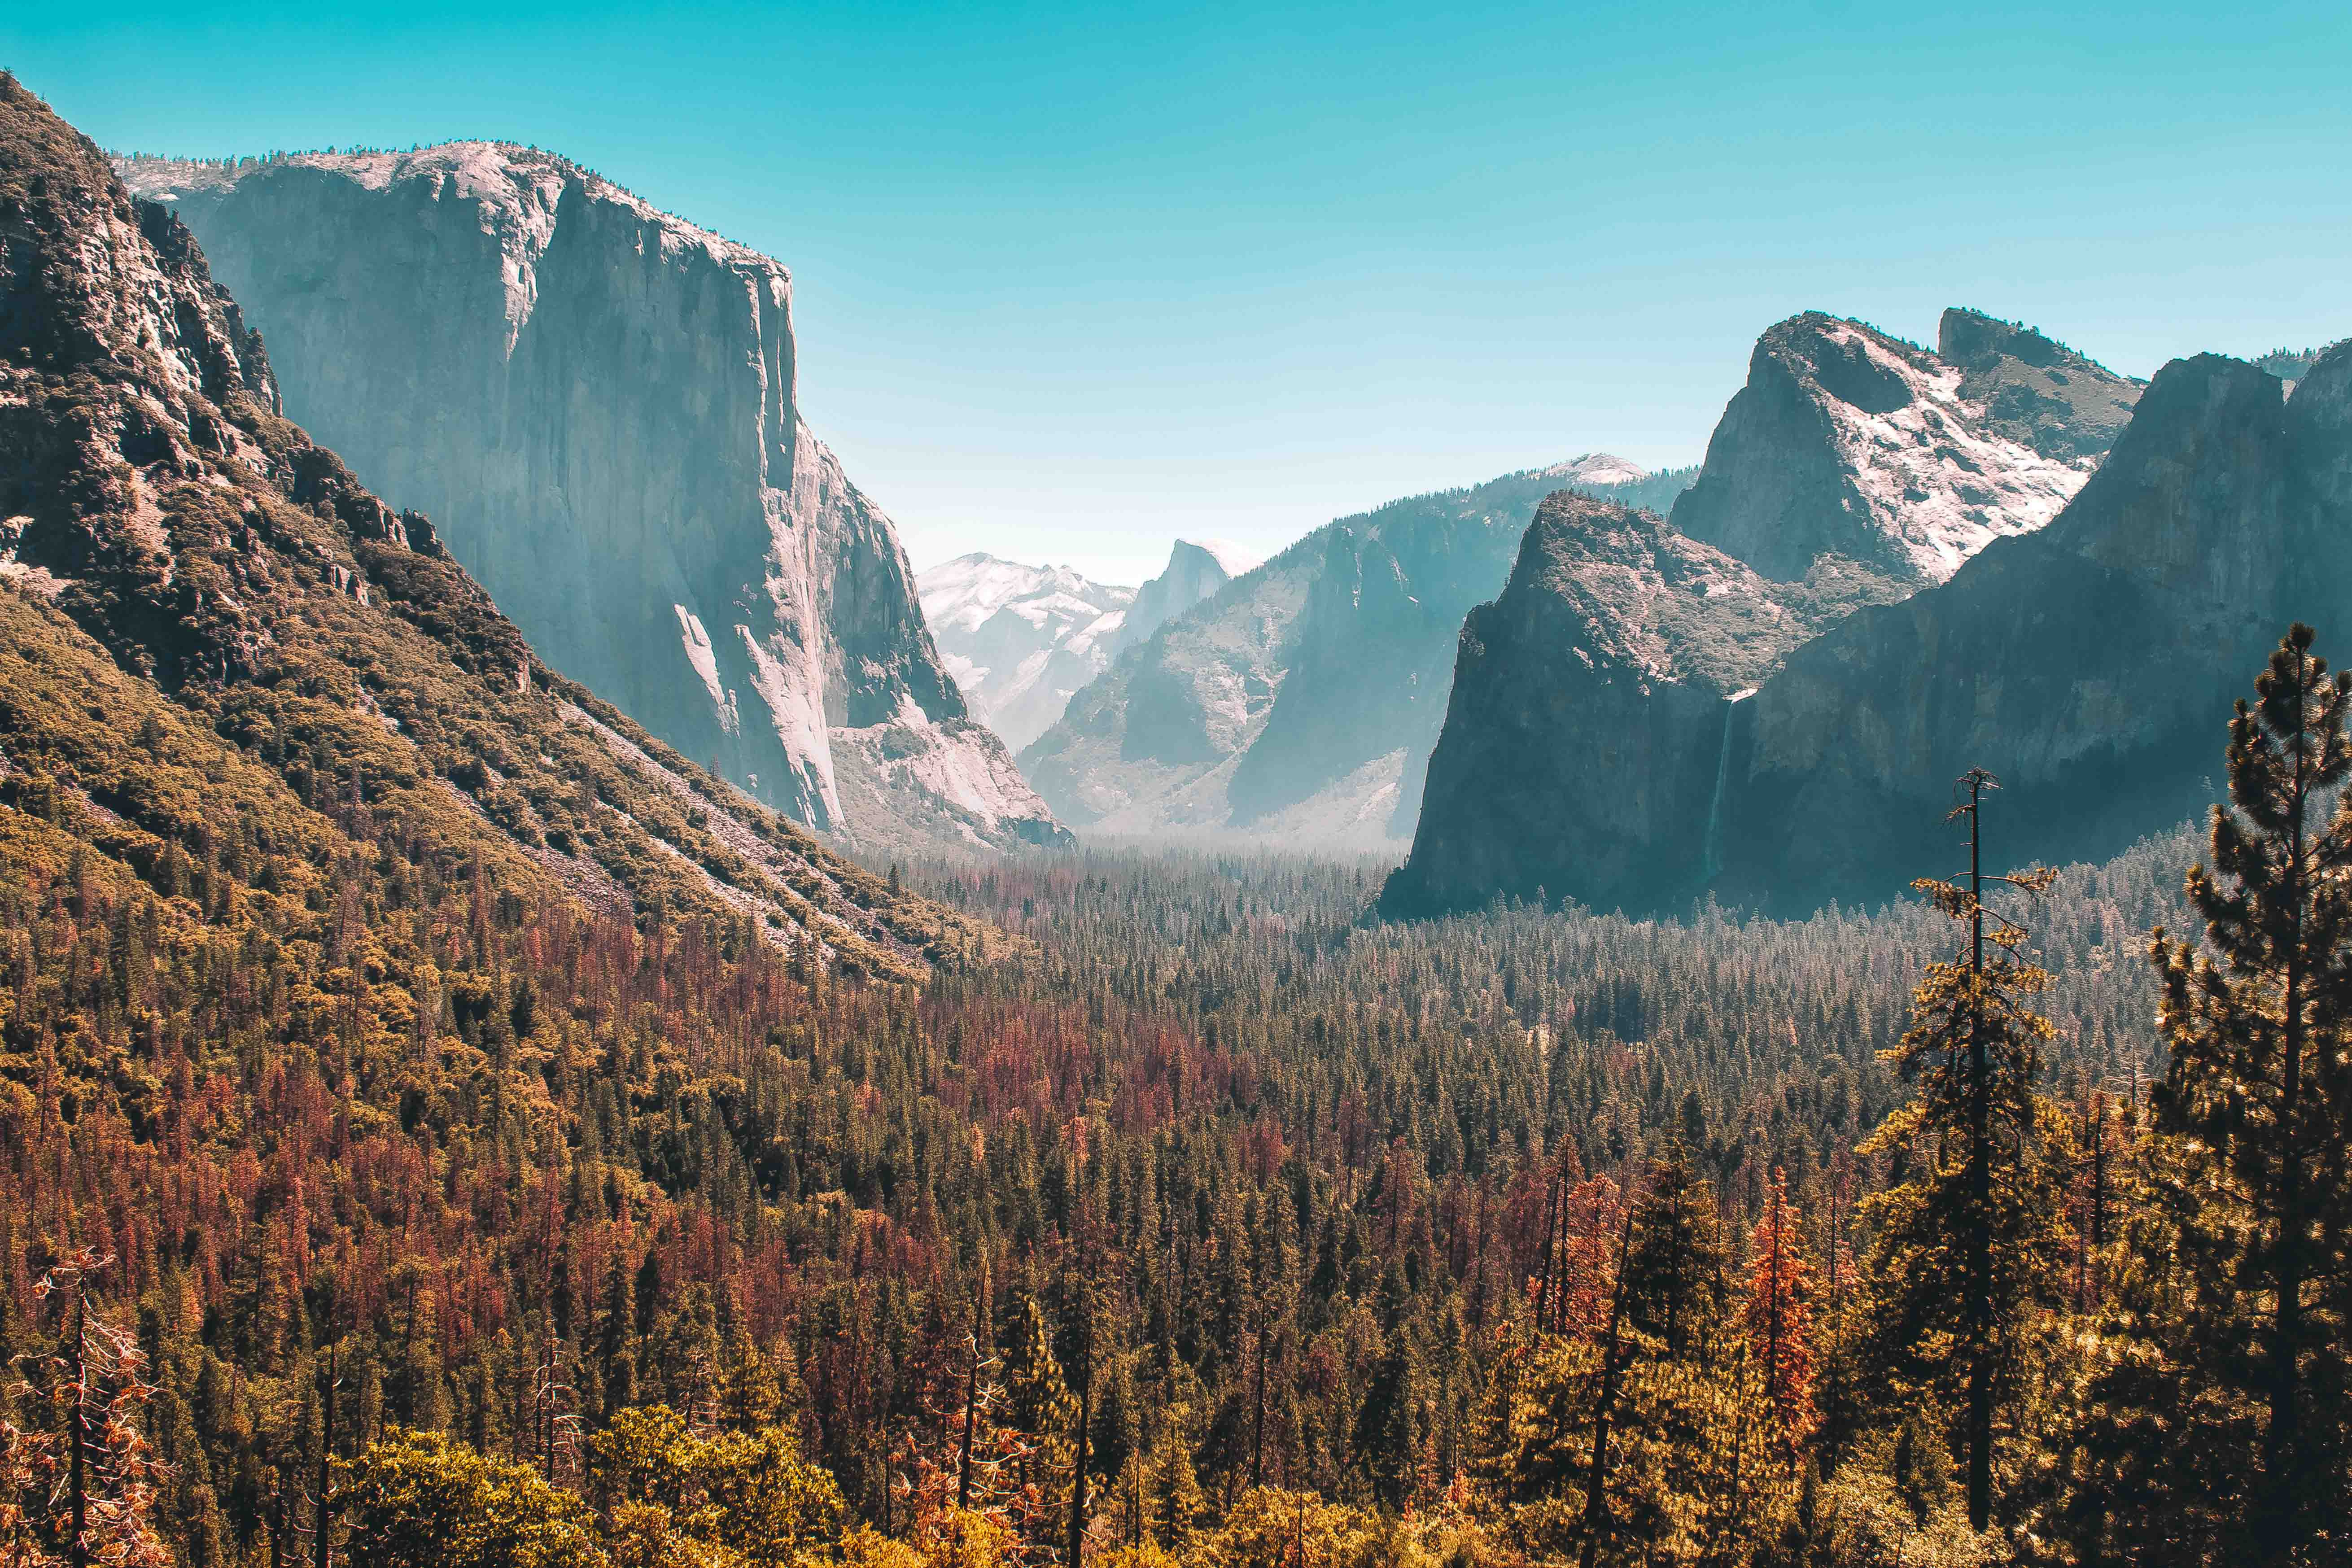 Visiting Yosemite National Park? Check out this guide.